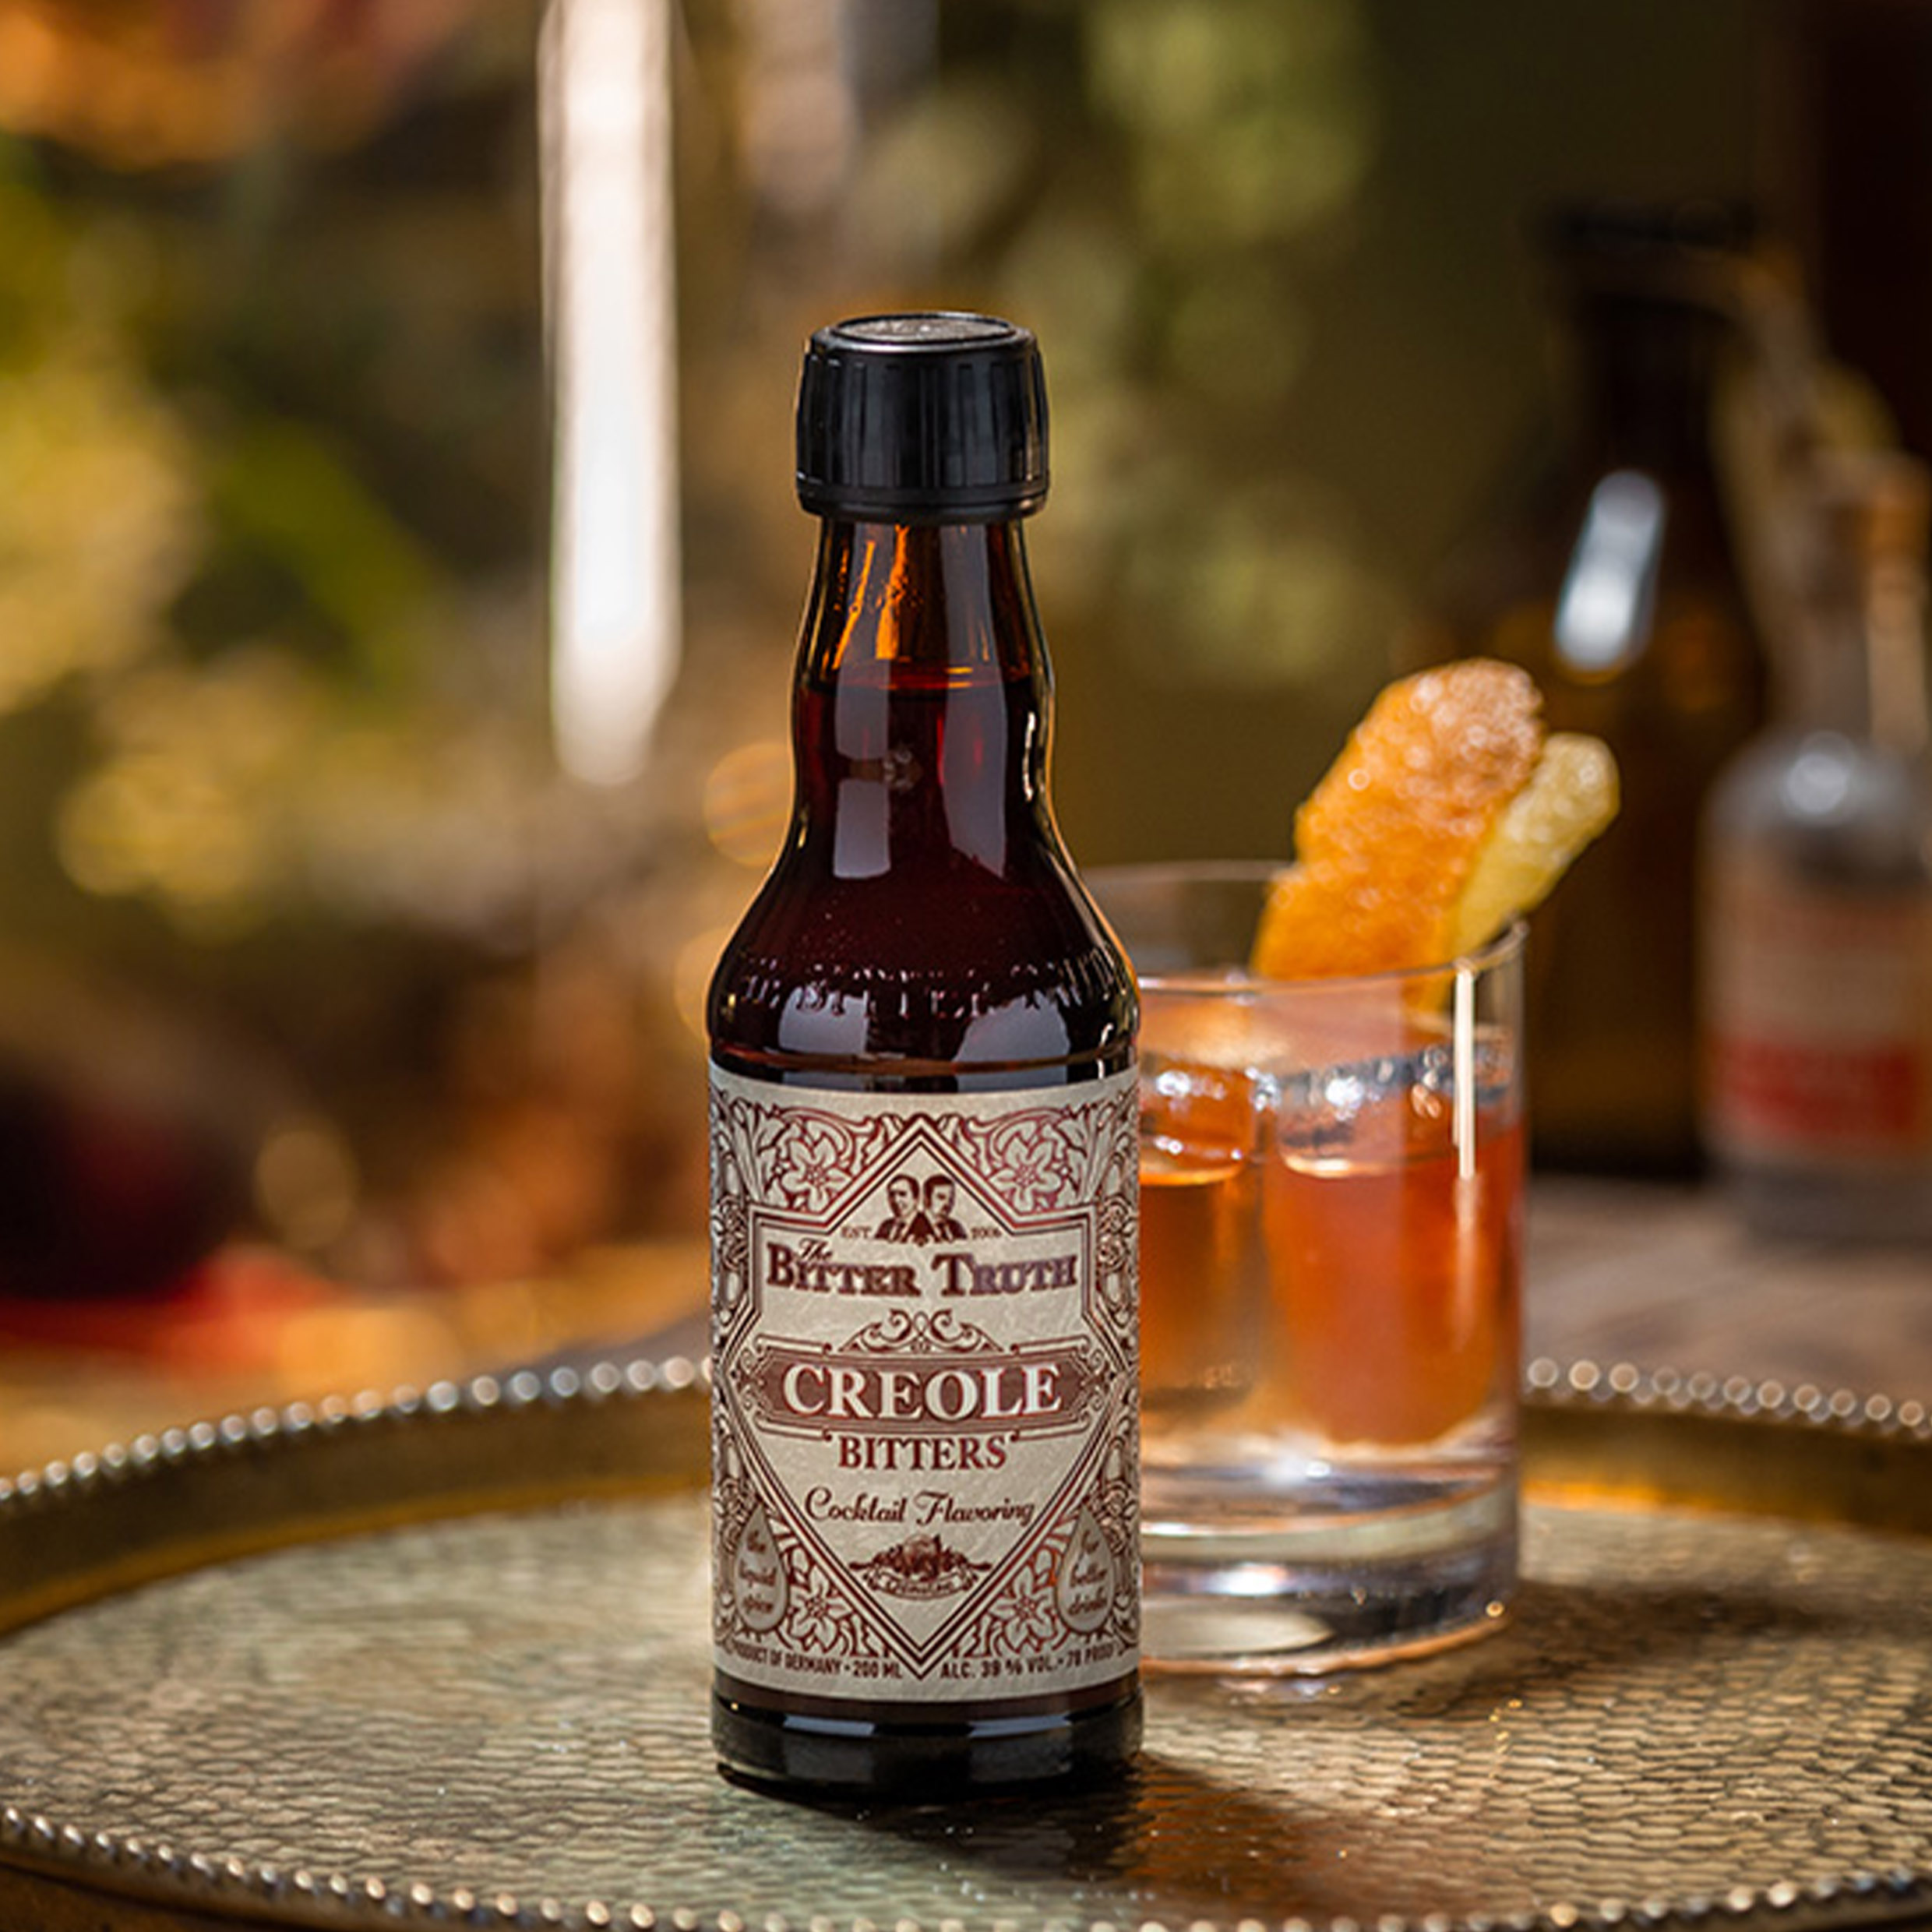 The Bitter Creole Chocolate Bitters